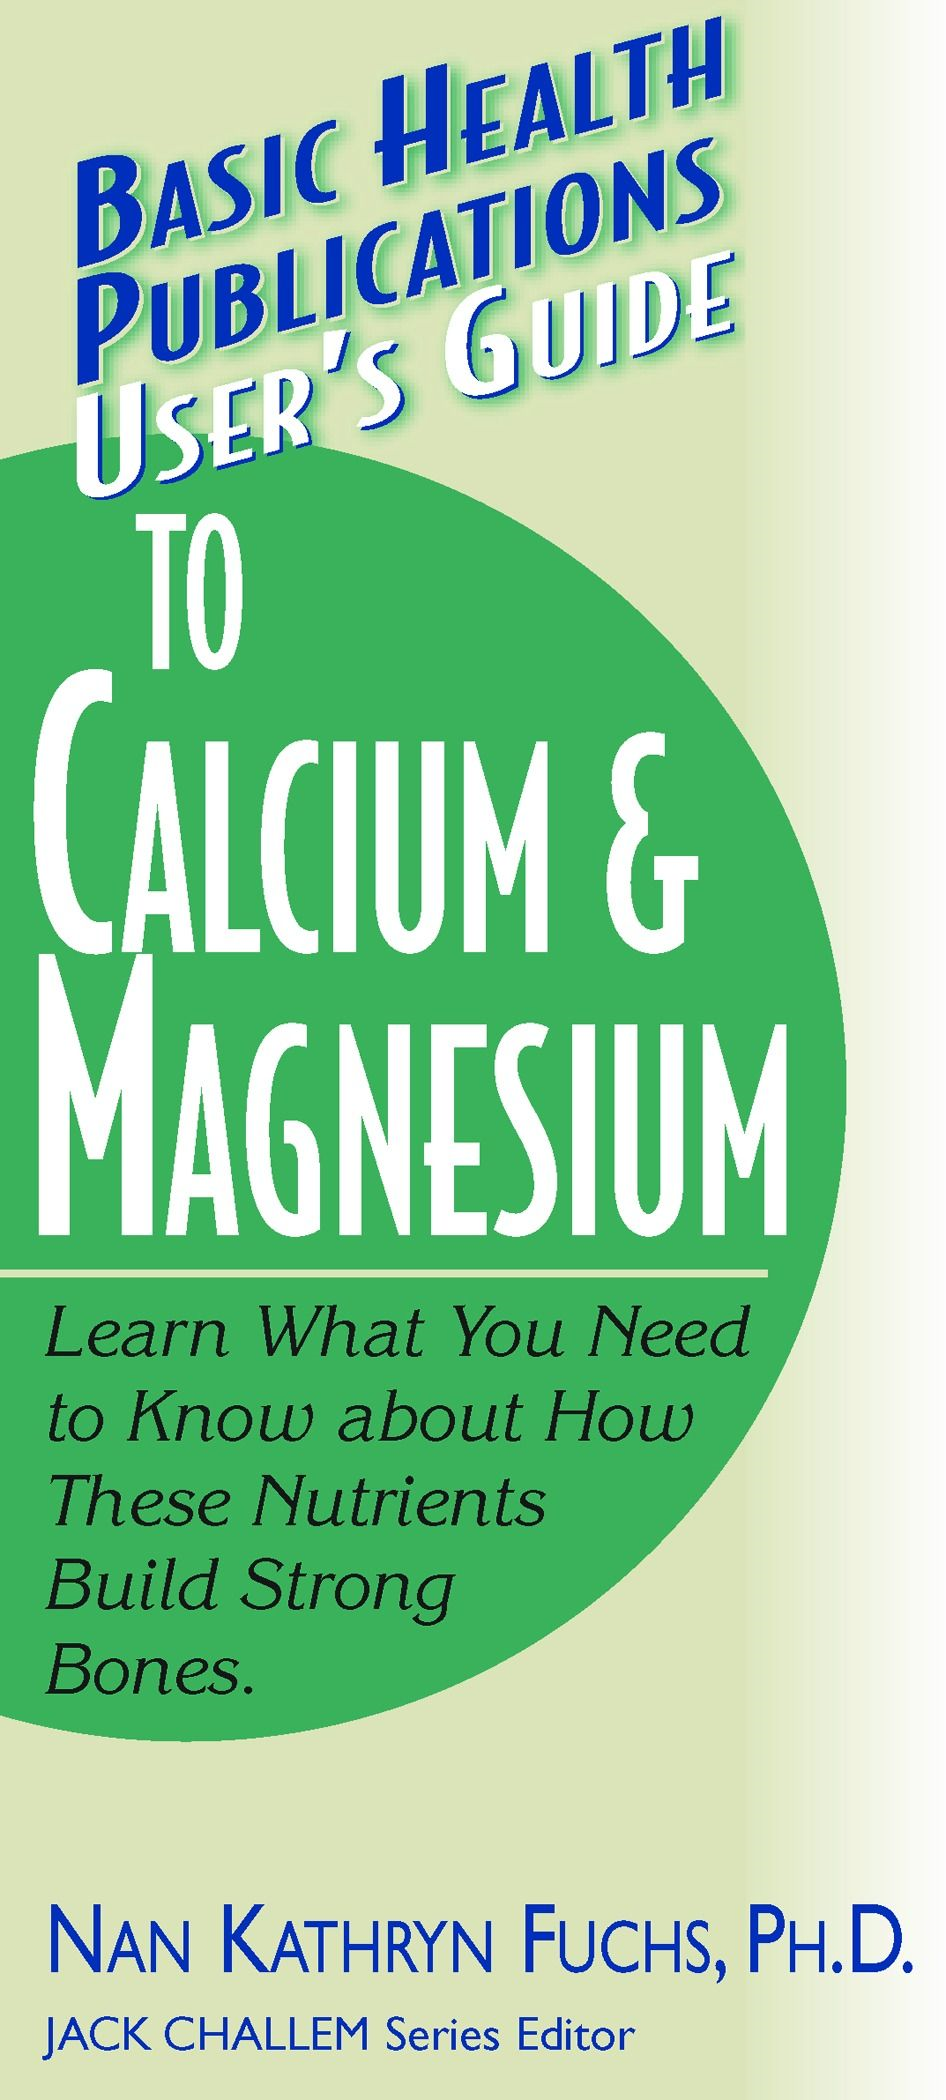 User's Guide to Calcium & Magnesium: